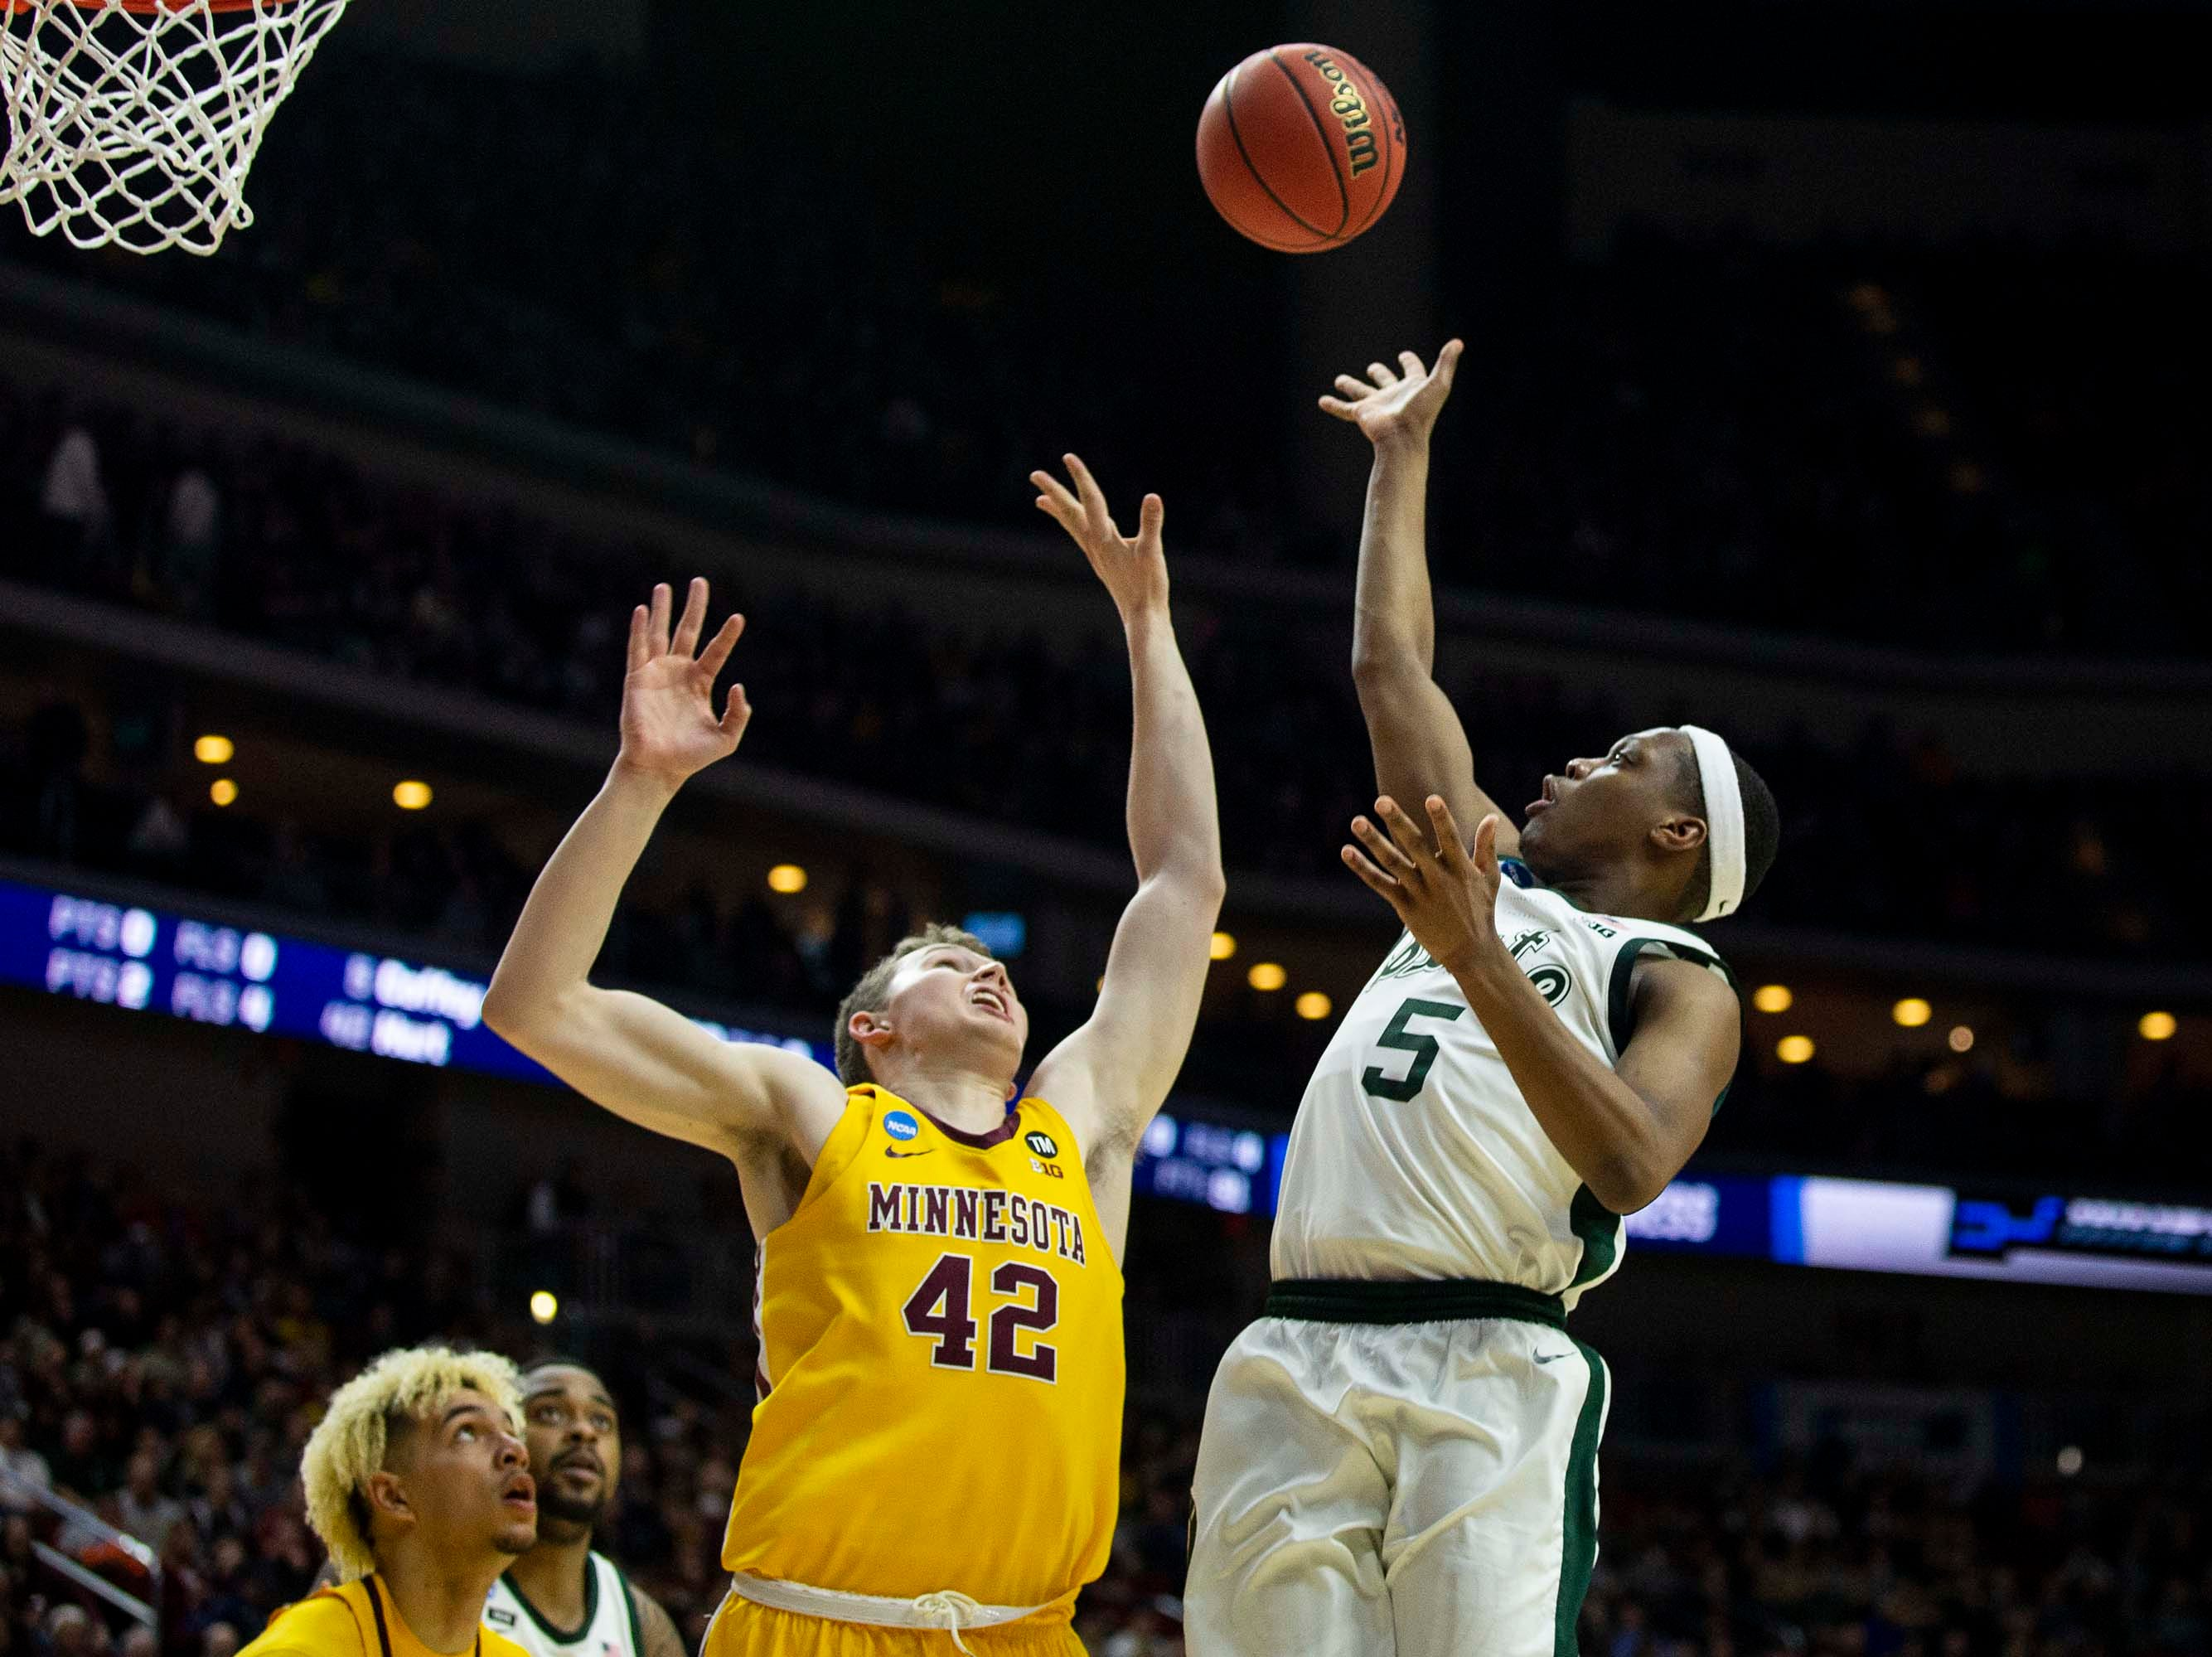 Michigan State's Cassius Winston shoots the ball during the NCAA Tournament second-round match-up between Minnesota and Michigan State on Saturday, March 23, 2019, in Wells Fargo Arena in Des Moines, Iowa.